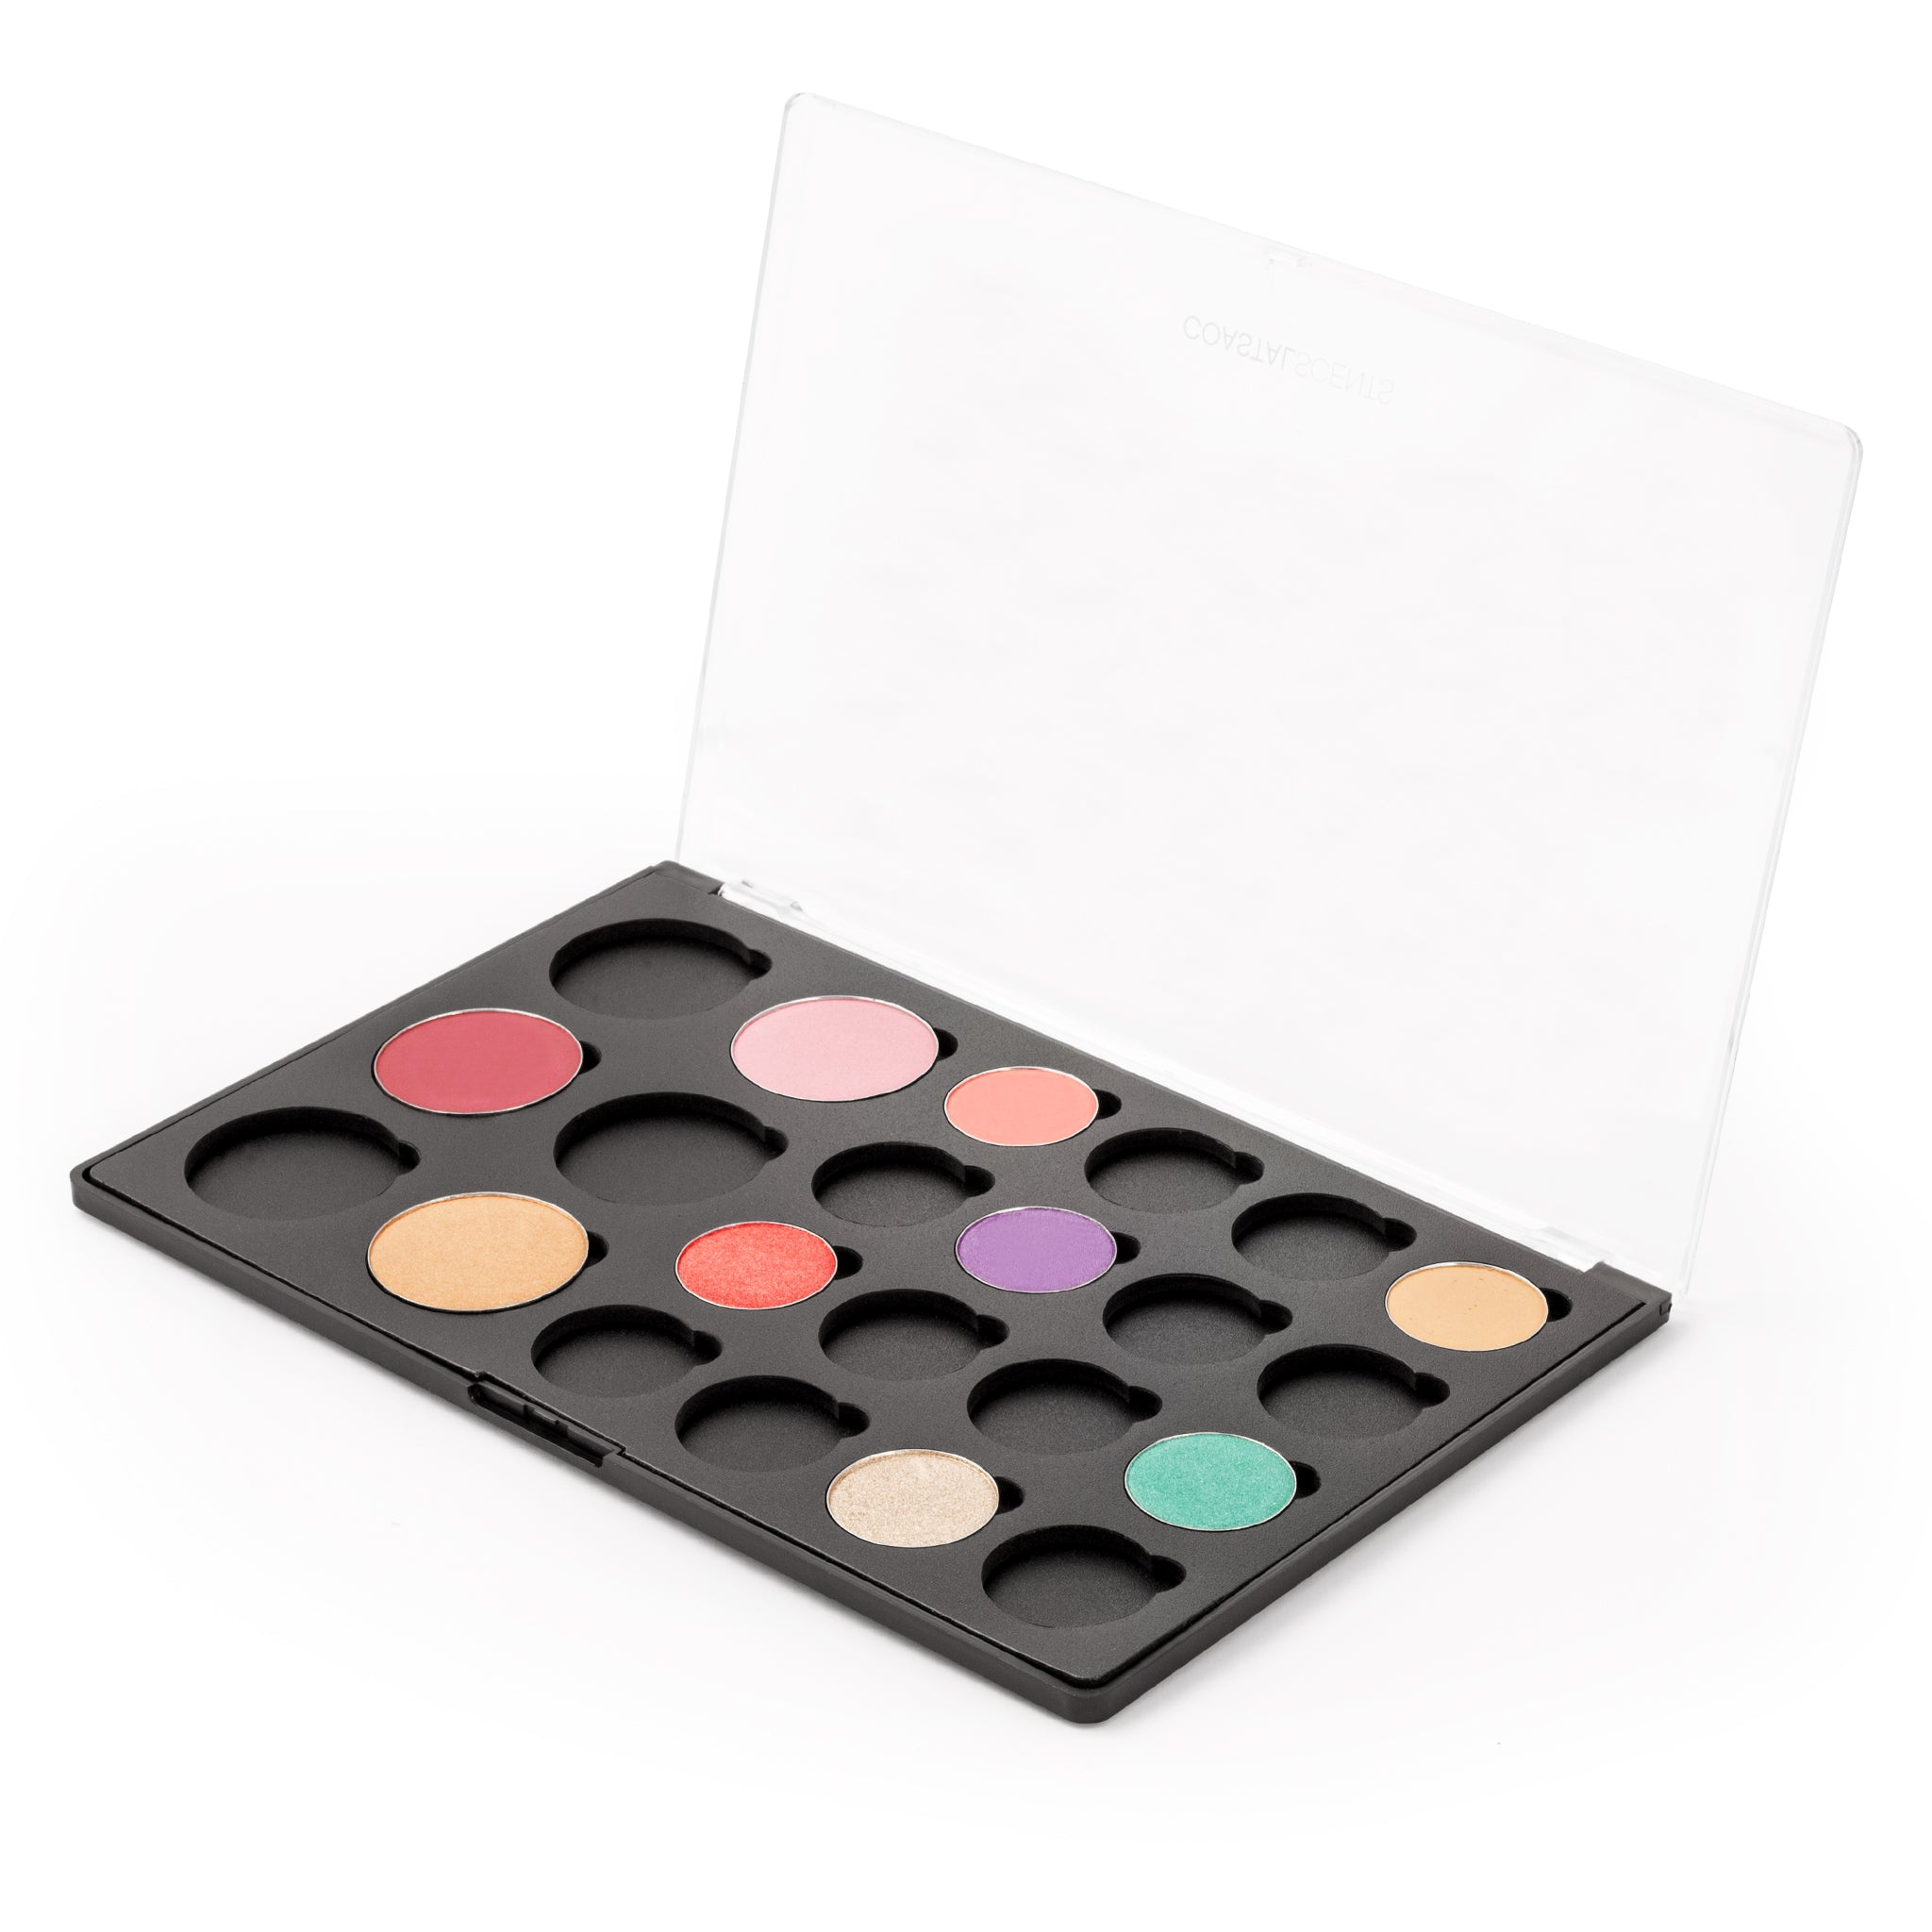 Makeup Palette- Empty Palette: 6 Blushes and 16 Shadows With Hotpots By Coastal Scents